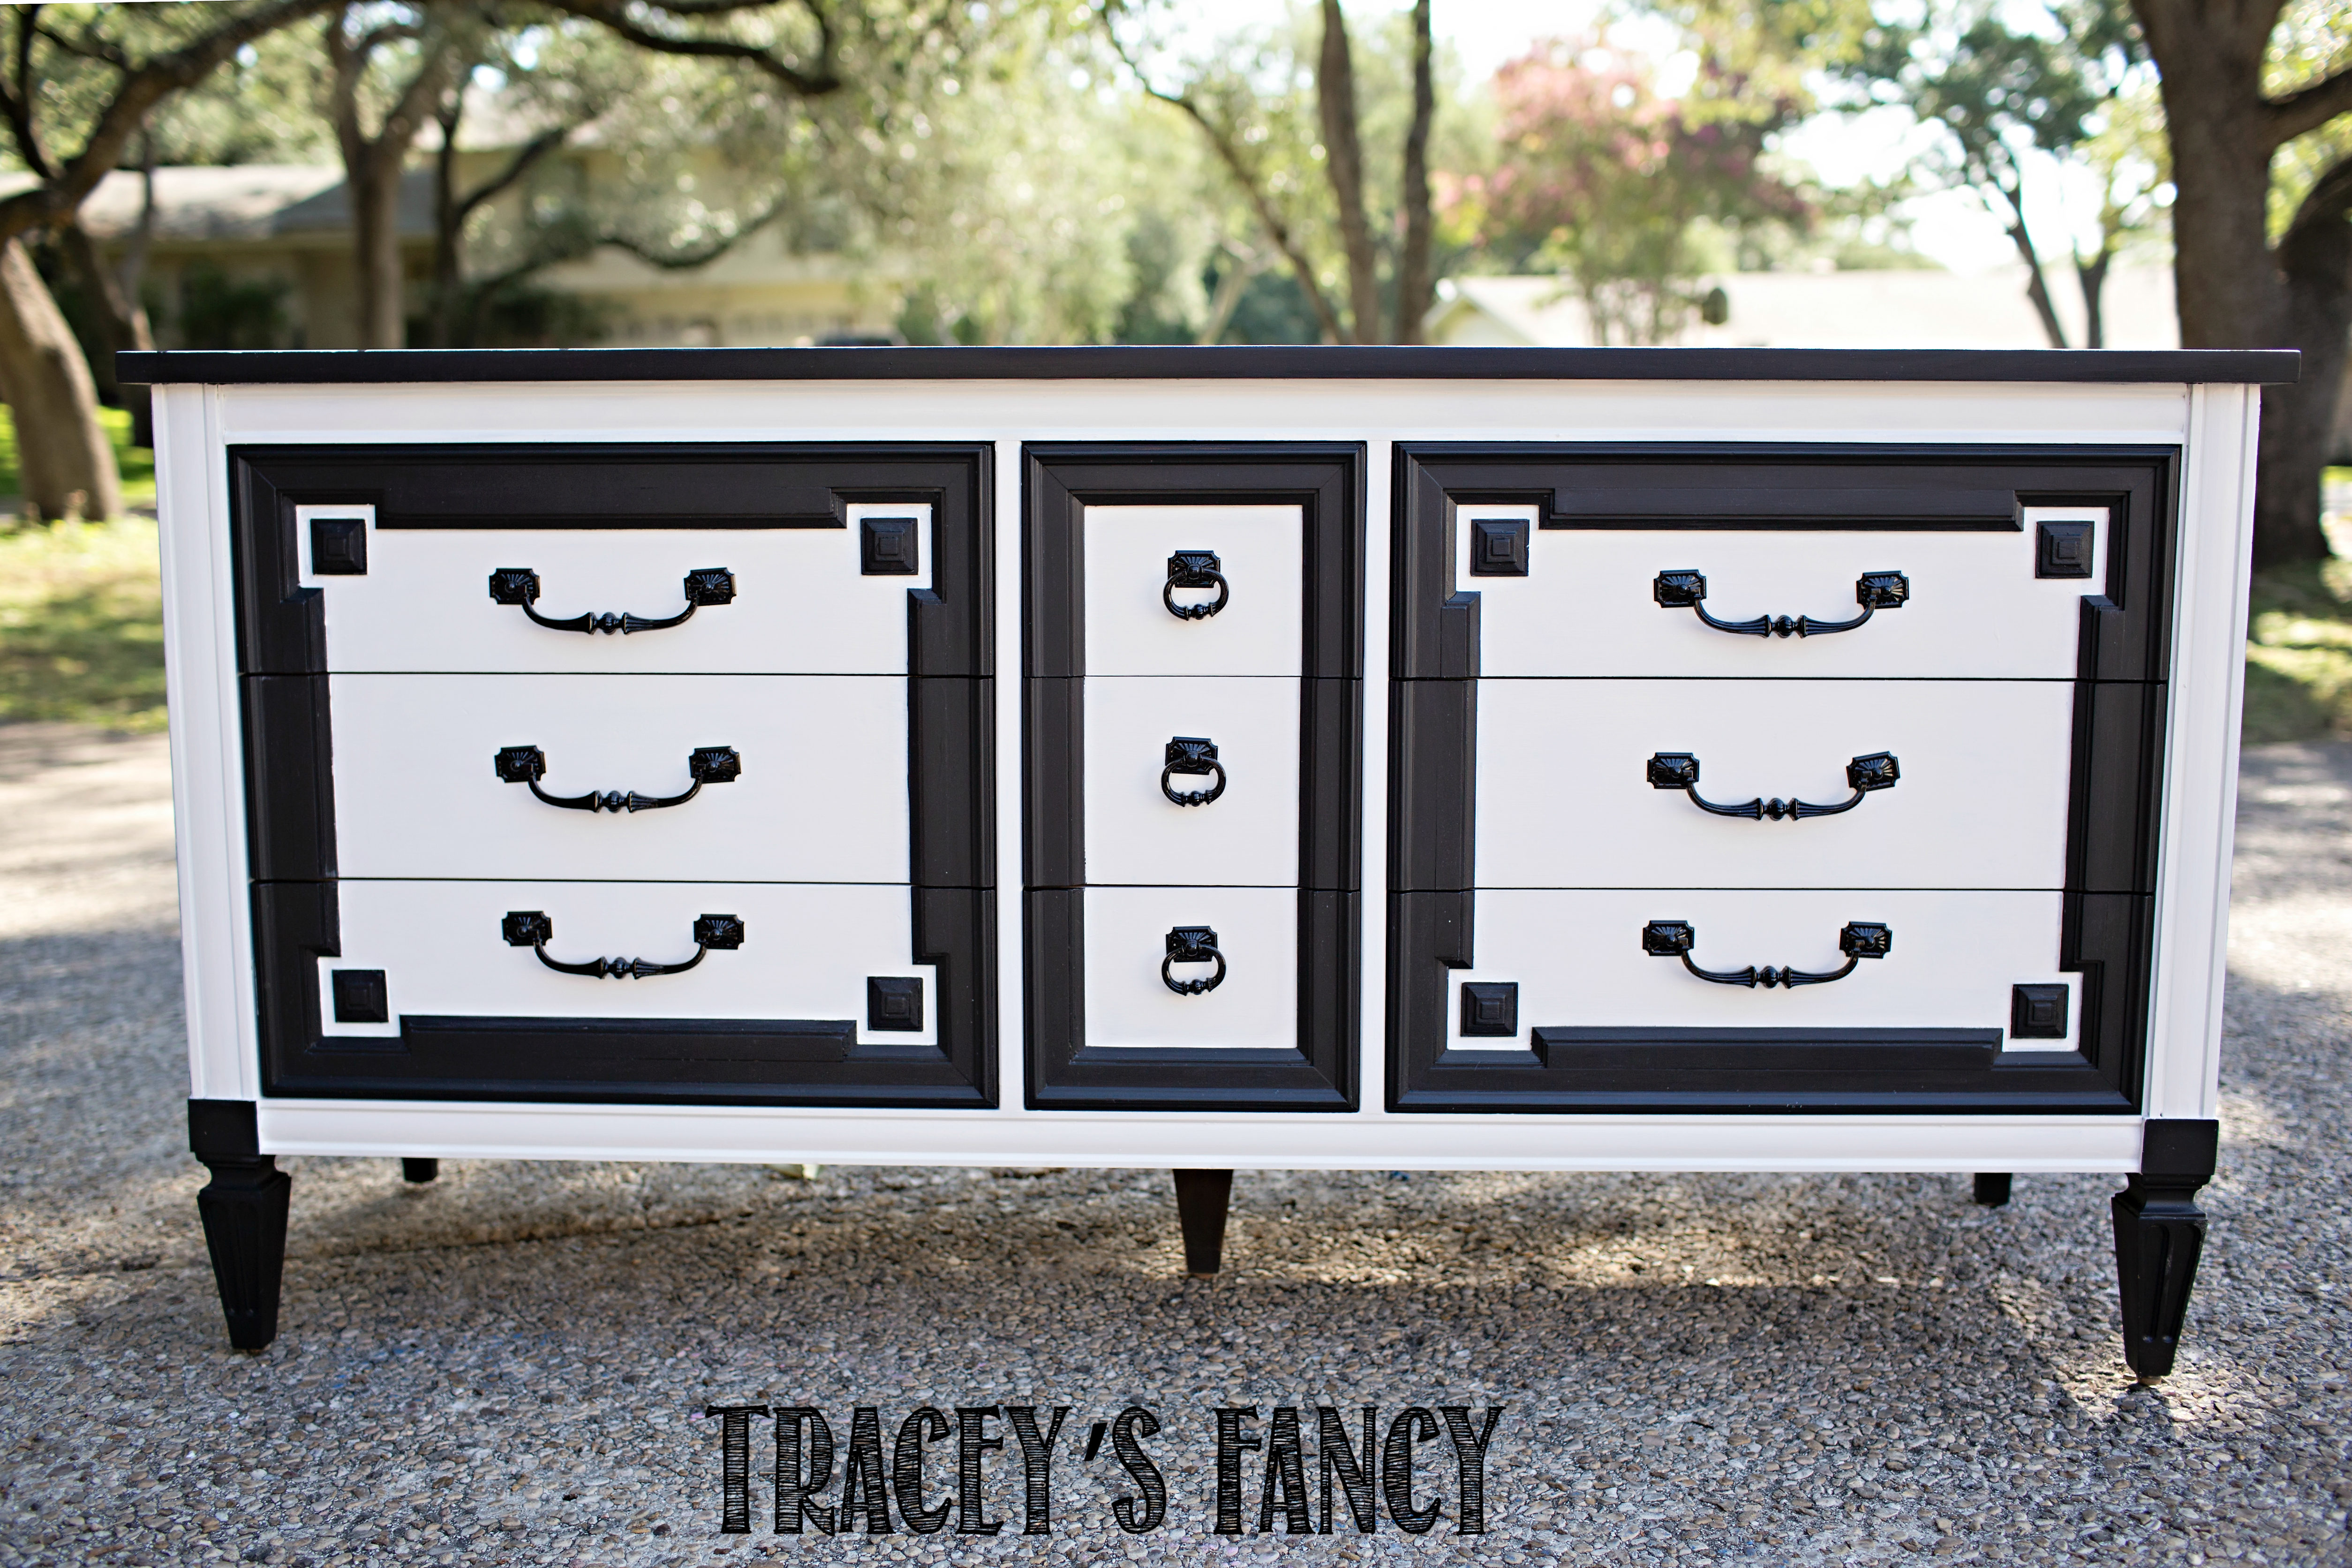 Whimsy Furniture On Black And White Dresser With Harlequin Furniture By Traceys Fancy Add Whimsy To Any Room Traceys